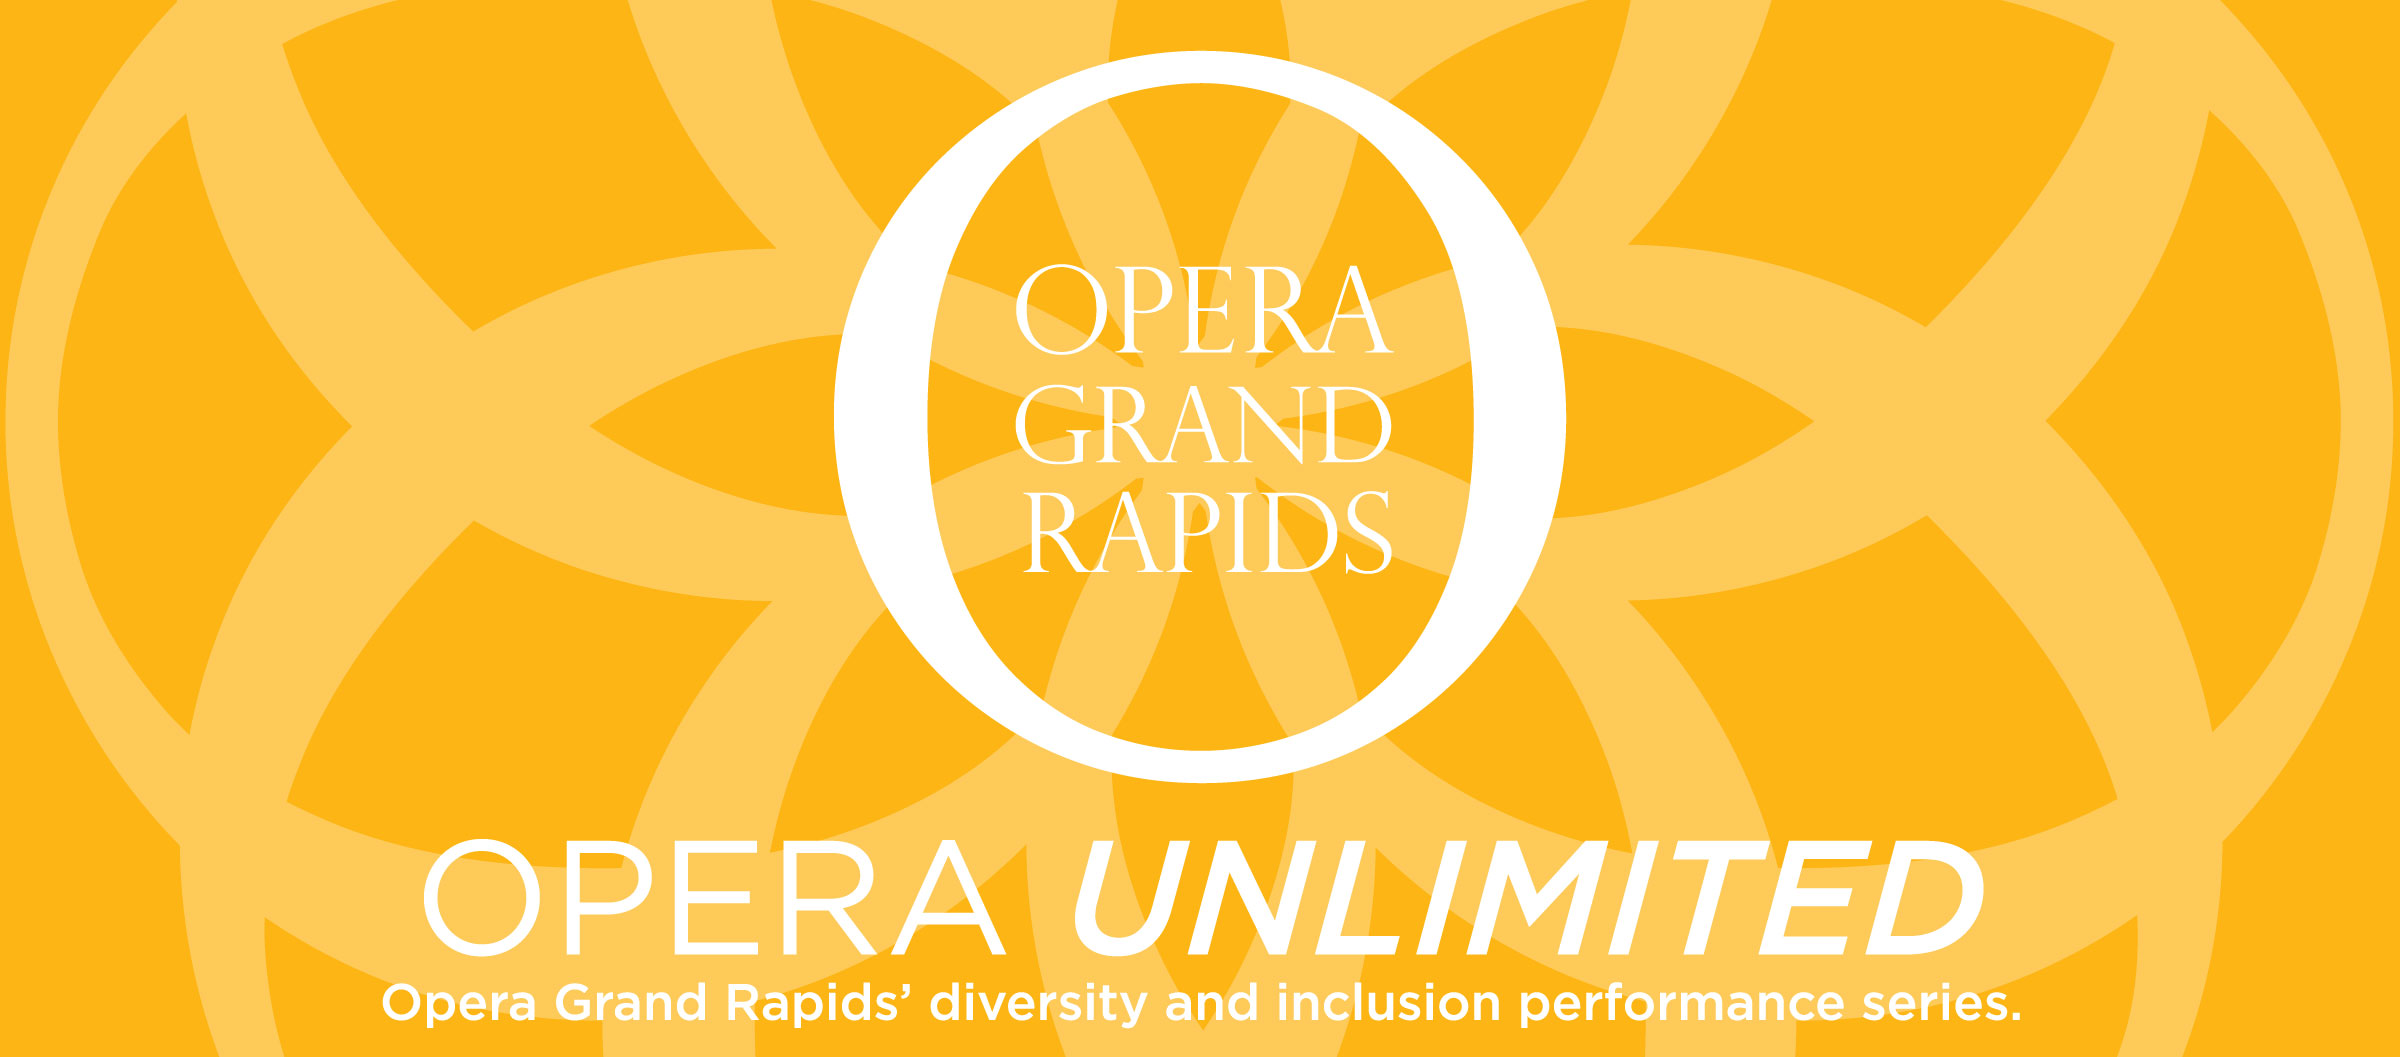 Opera Unlimited - Opera Grand Rapids' diversity and inclusion performance series